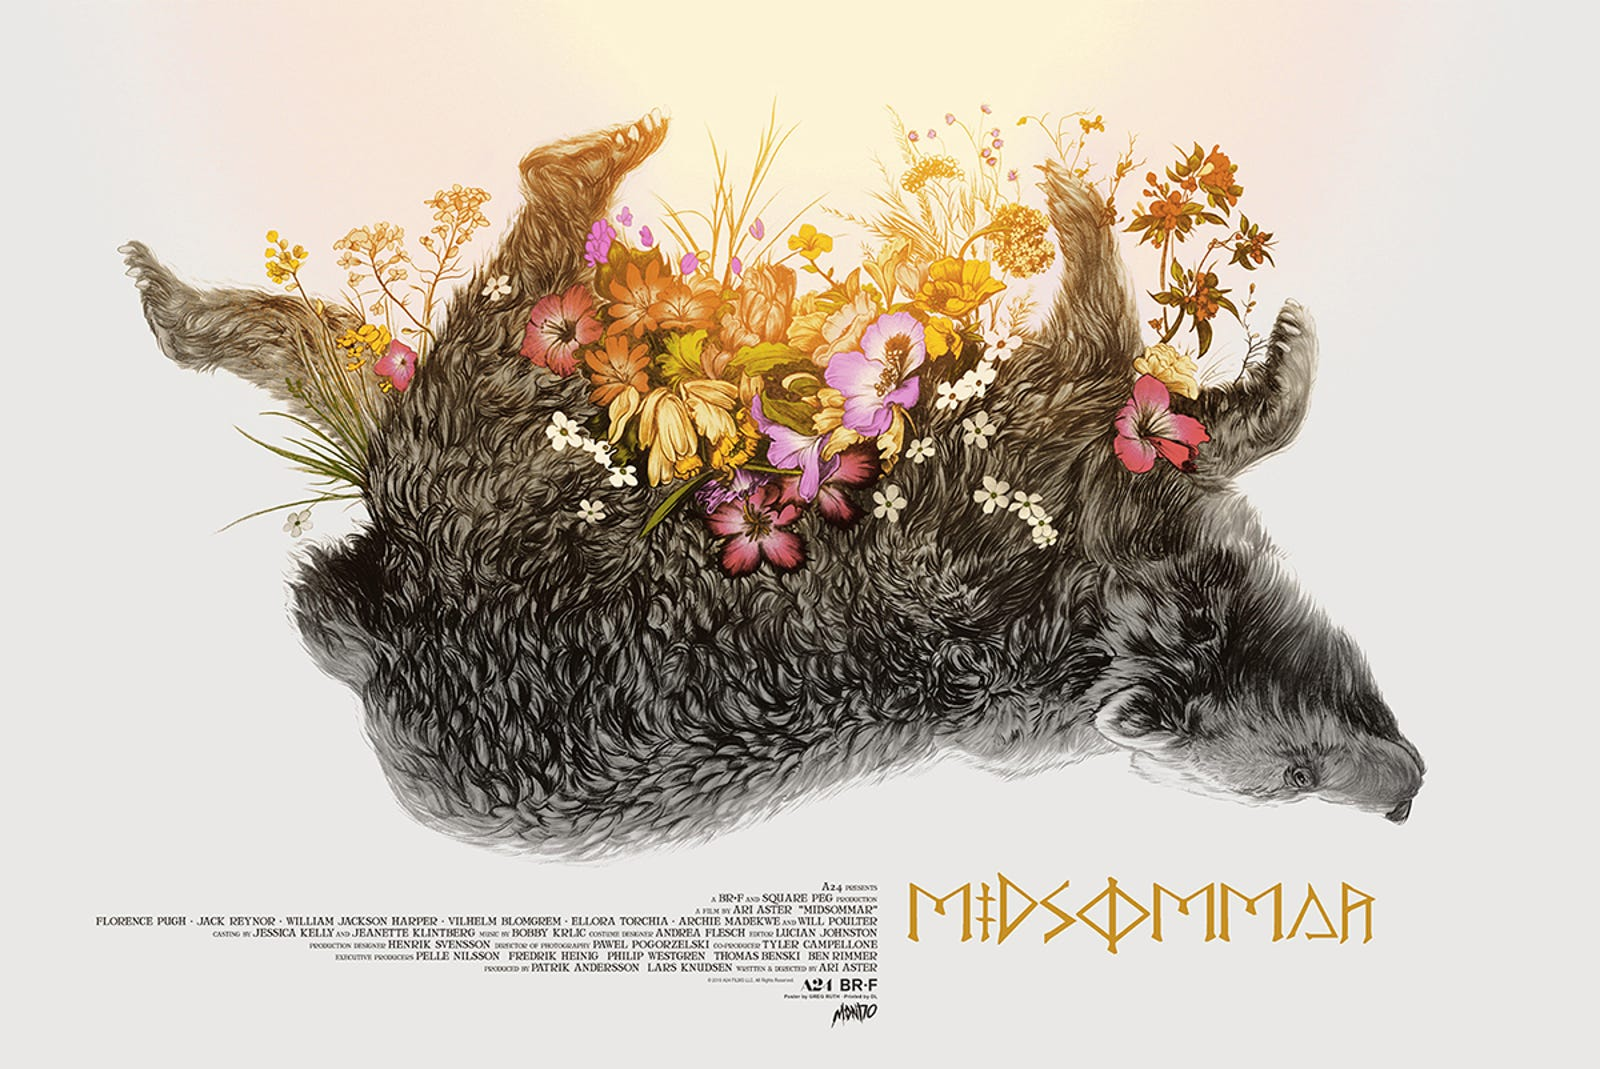 "MIDSOMMAR by Greg Ruth 36""x24"" Screenprinted Poster, Edition of 275 DL Screenprinting $50"